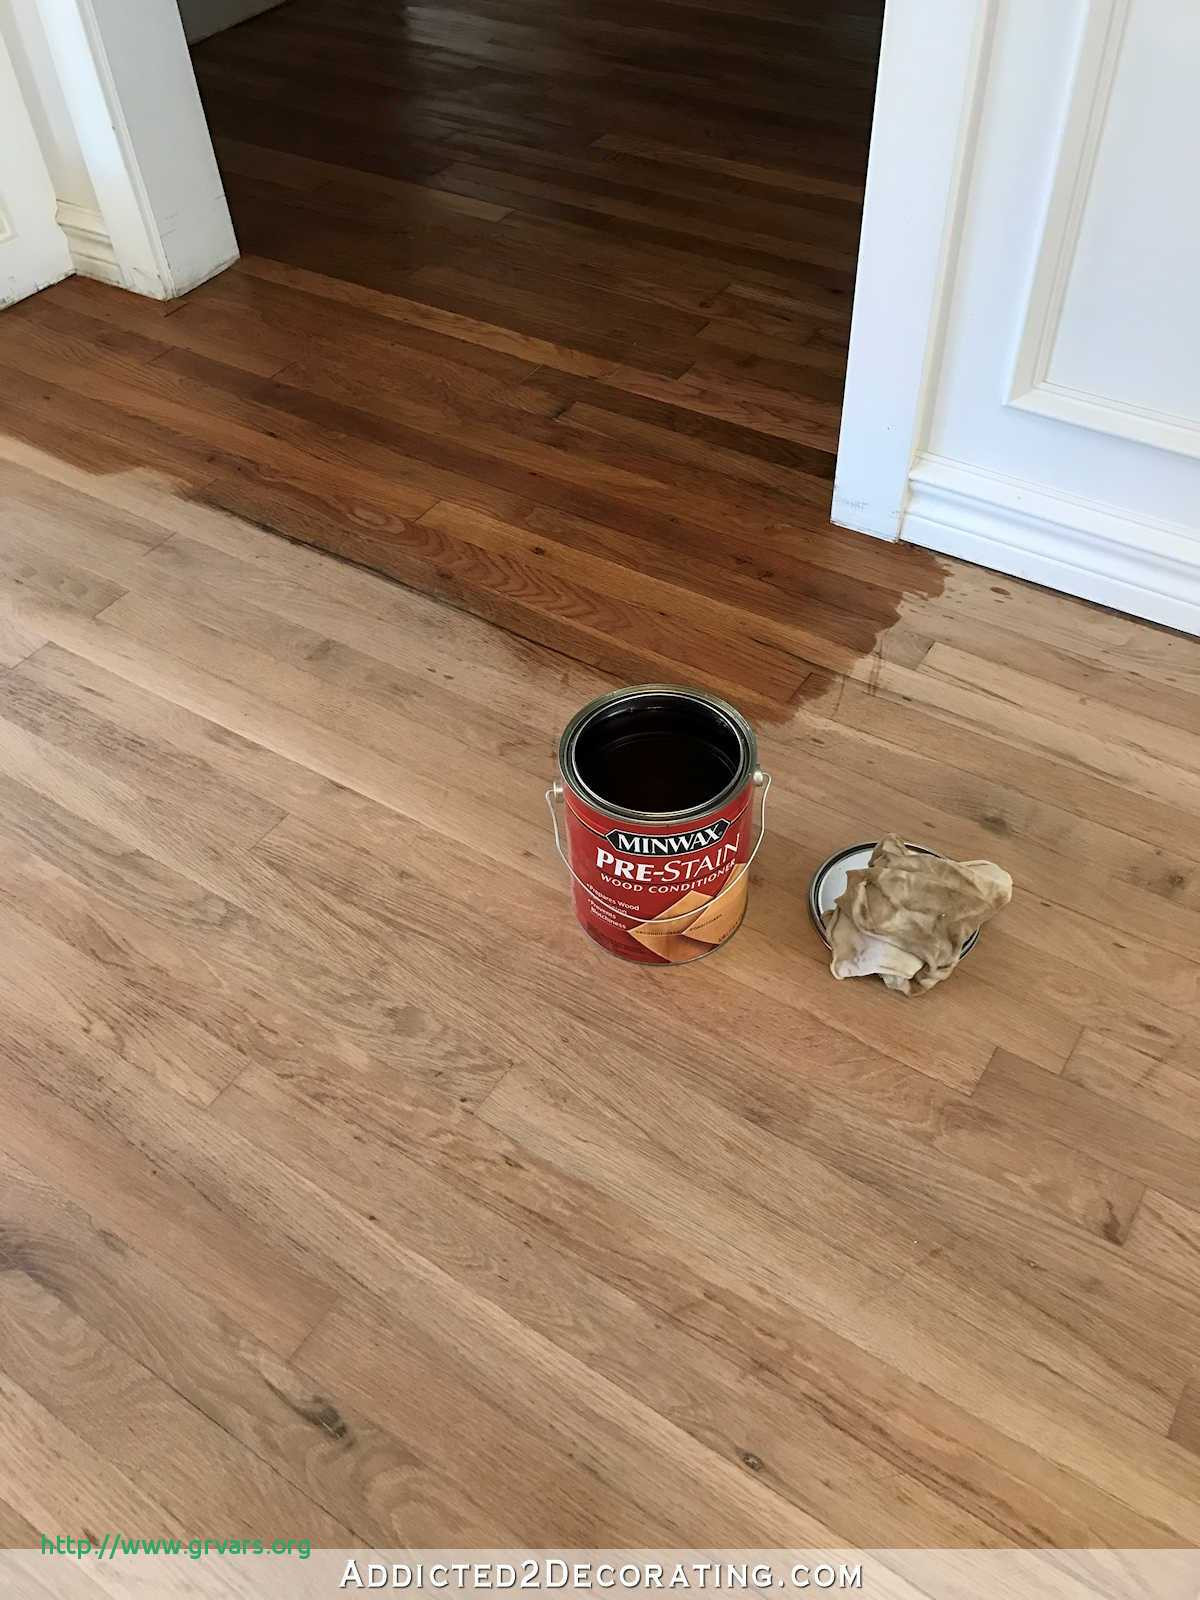 tropical walnut hardwood flooring of 21 luxe how to clean prefinished hardwood floors with vinegar with 21 photos of the 21 luxe how to clean prefinished hardwood floors with vinegar